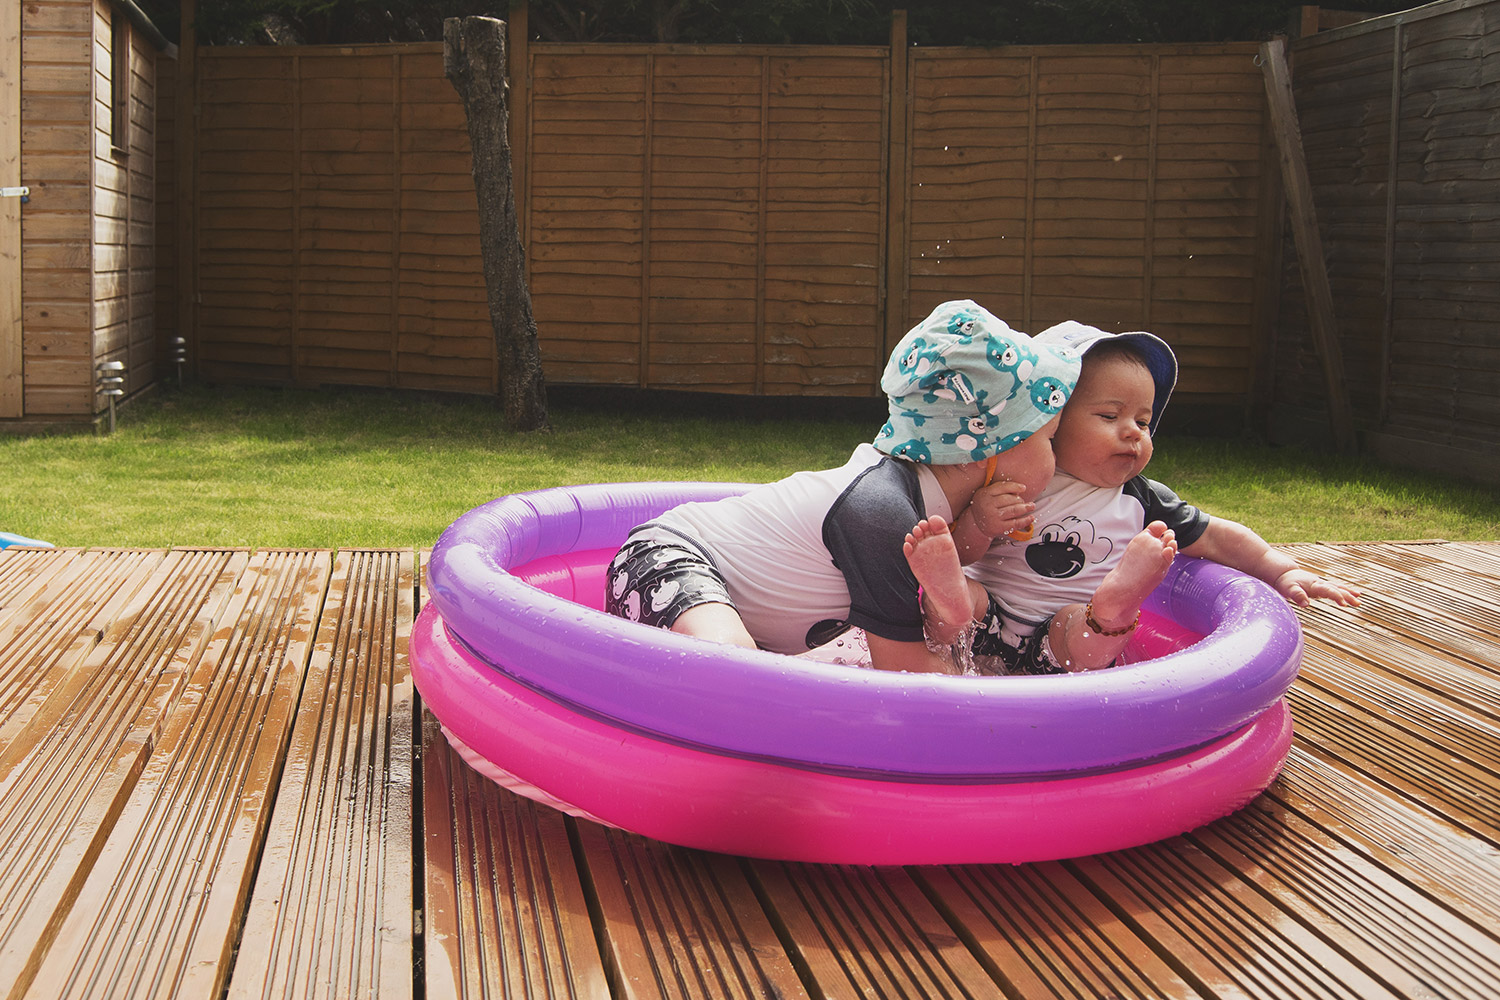 'Summer sunshine, and a new vlogging journey ahead' {The Ordinary Moments 21} - 3 year old and baby brother wearing Next matching monkey swimwear and Maxomorra seal sun hats splashing in ASDA paddling pool on a Summery day in the warm weather